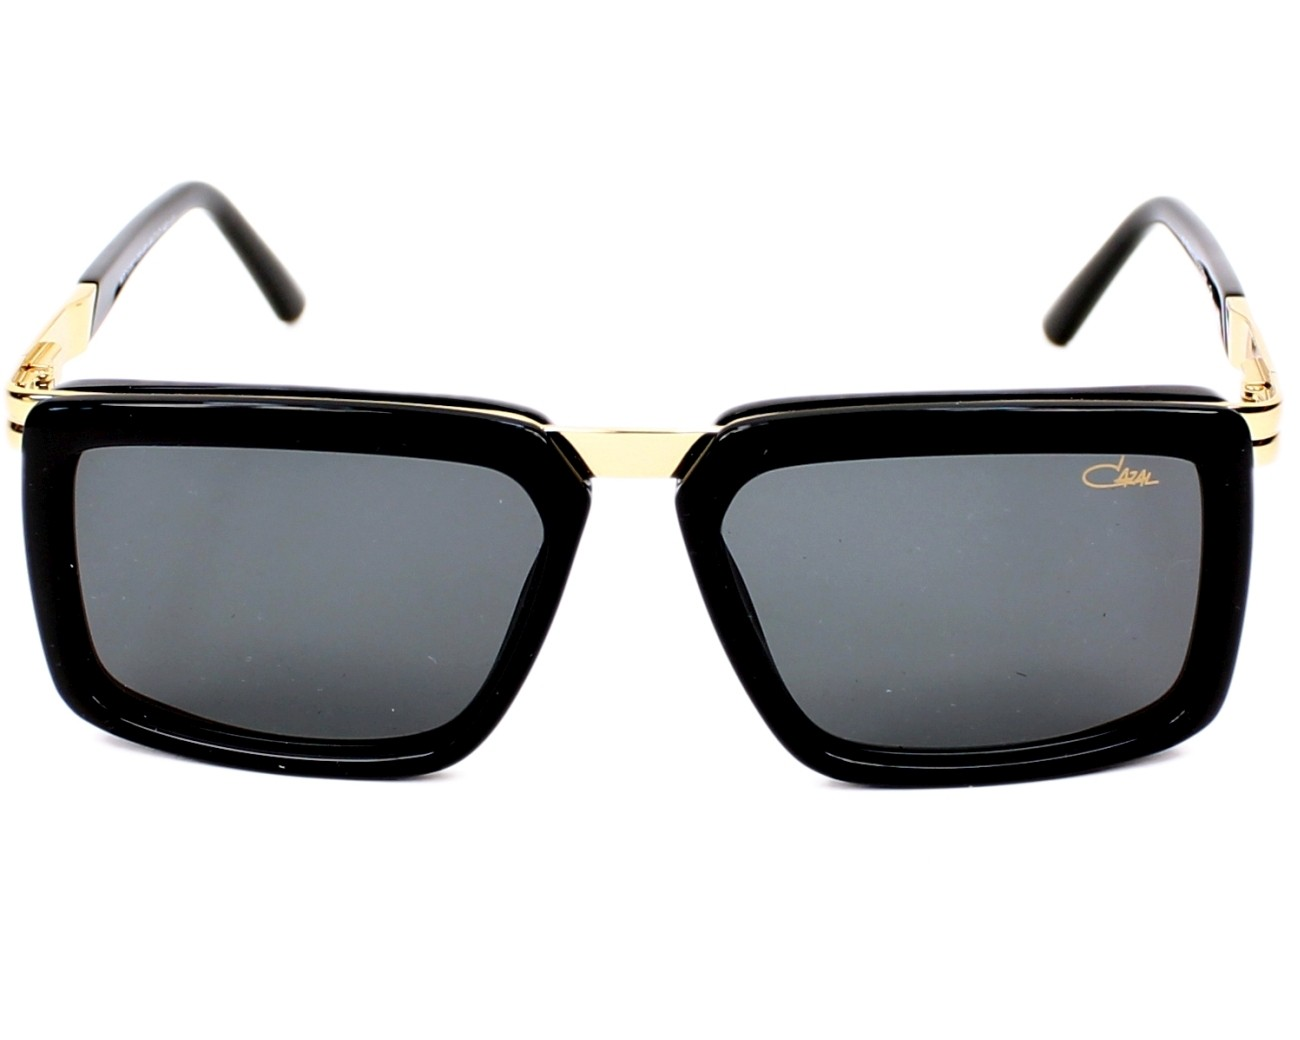 4f36ad125056 Sunglasses Cazal 6006-3 001 - Black Gold front view